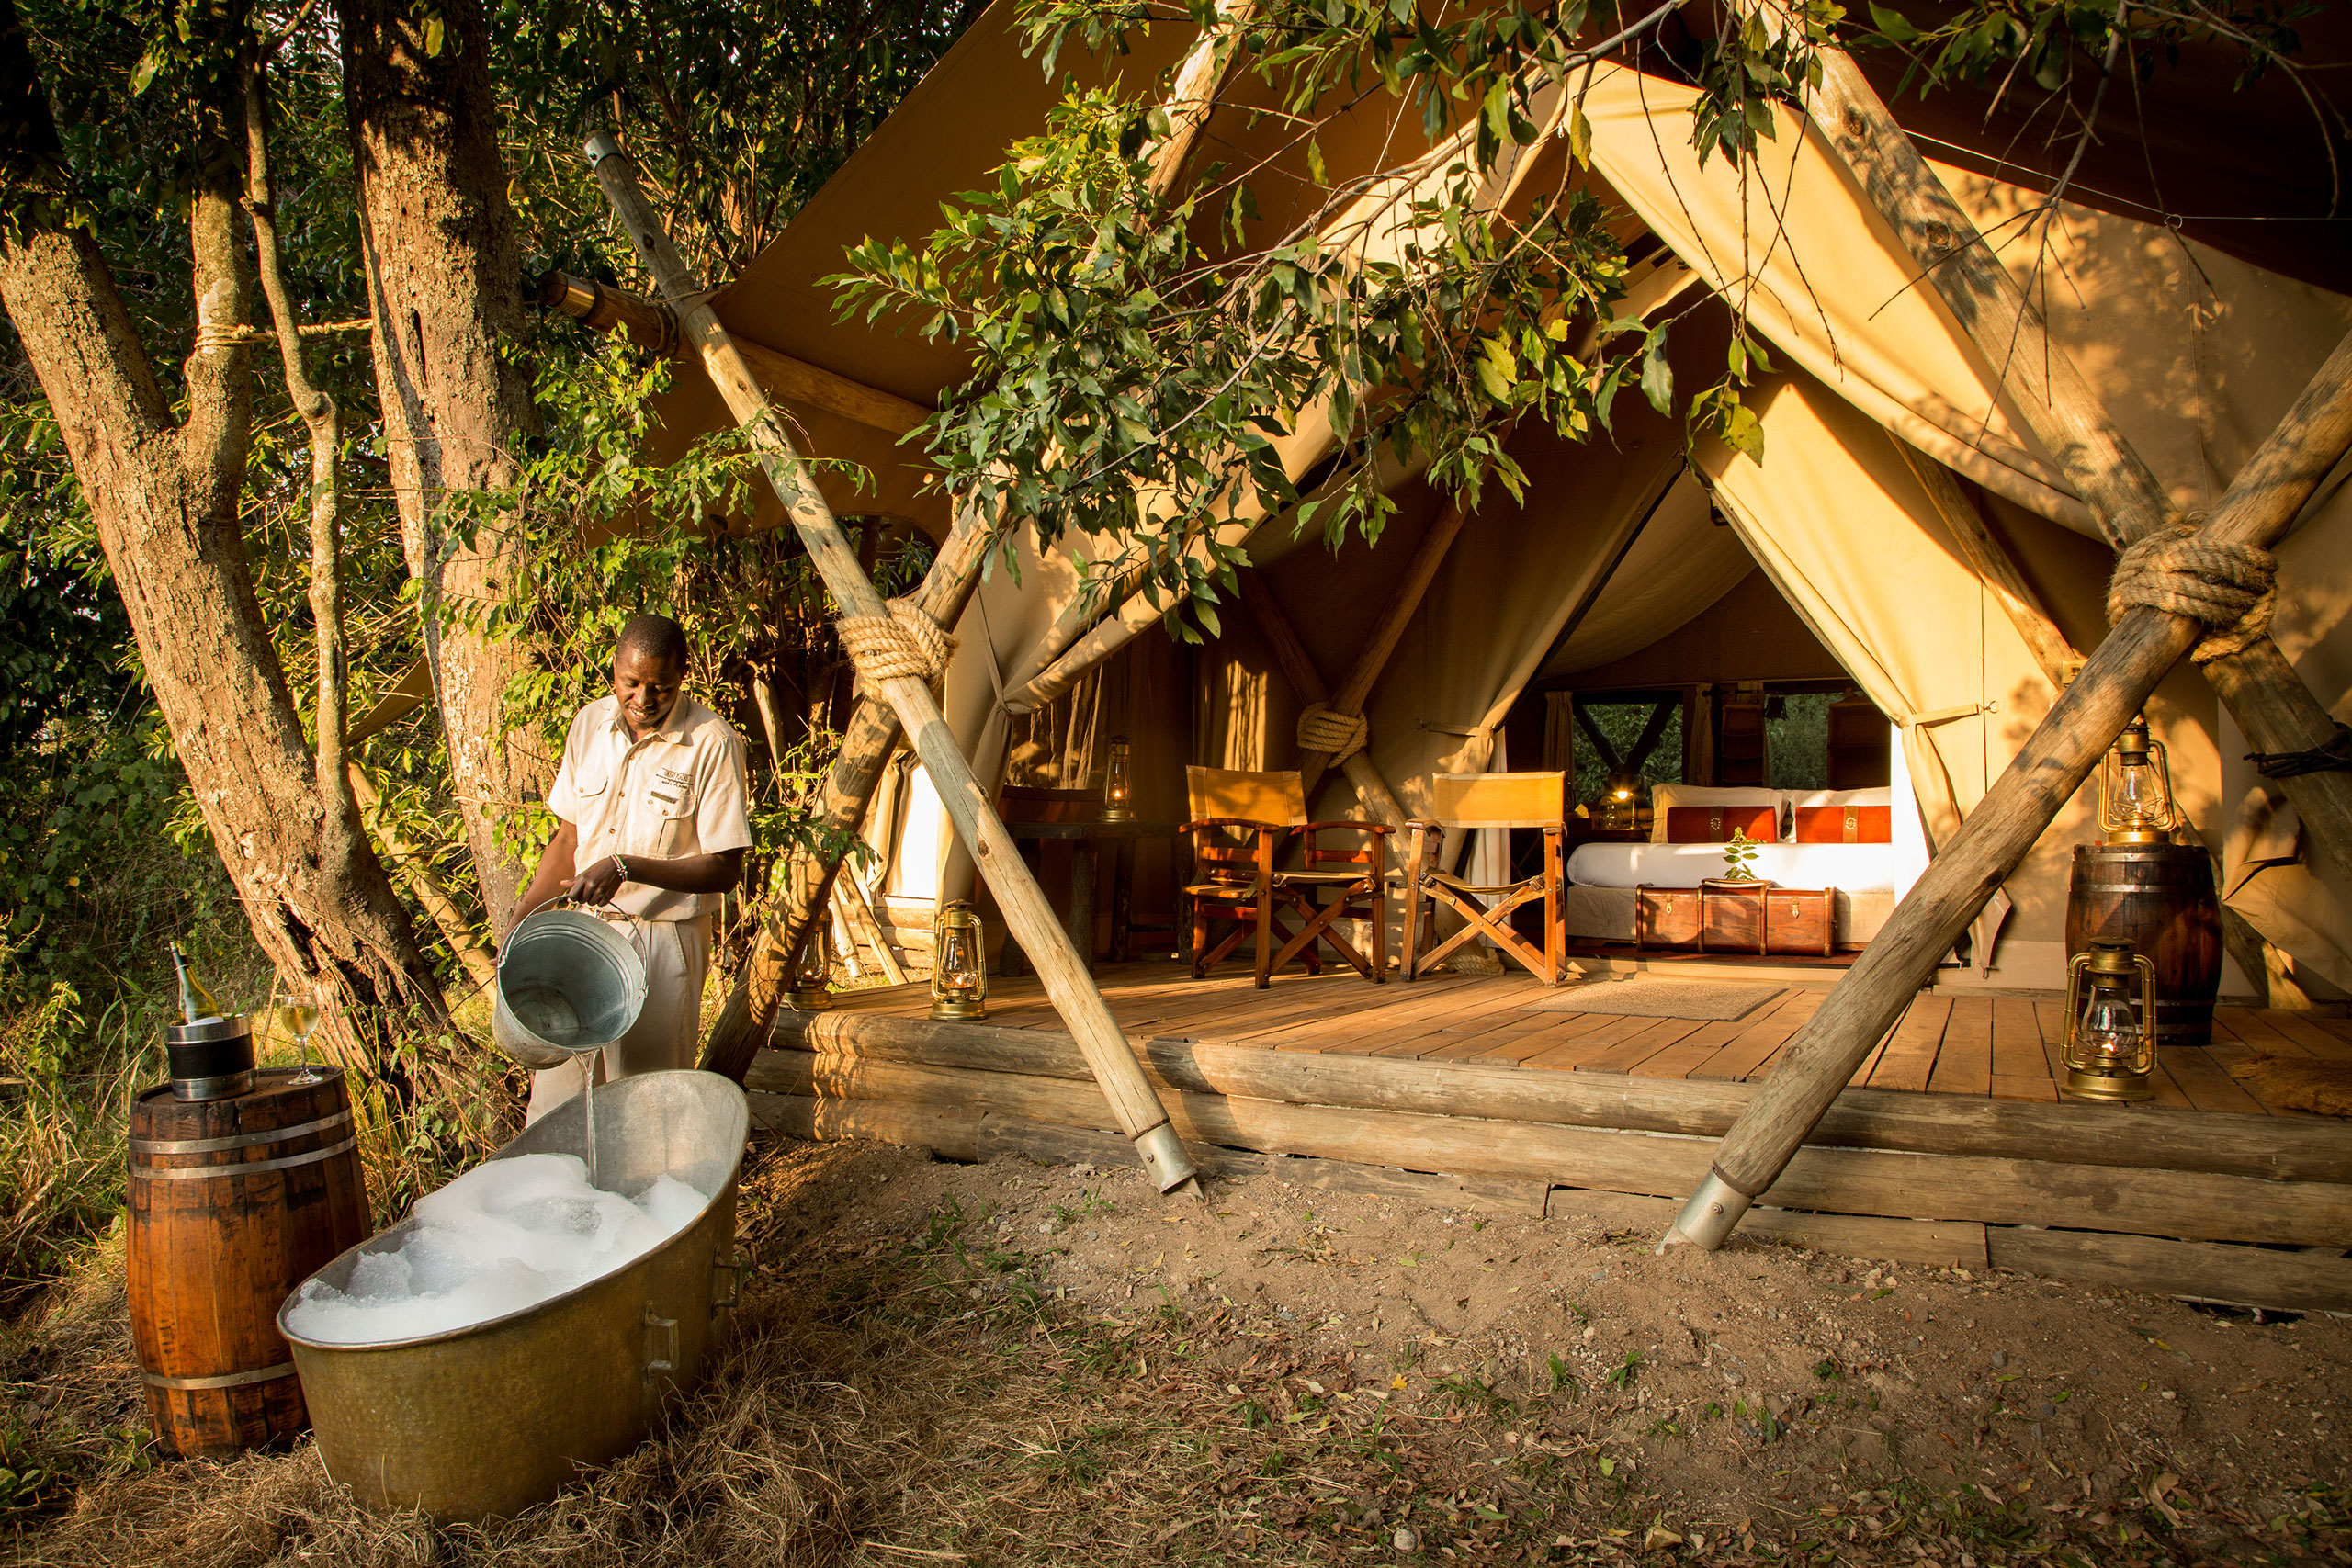 great plains conservation mara expedition camp masai enkosi africa kenya green season estacion verde tent bath safari